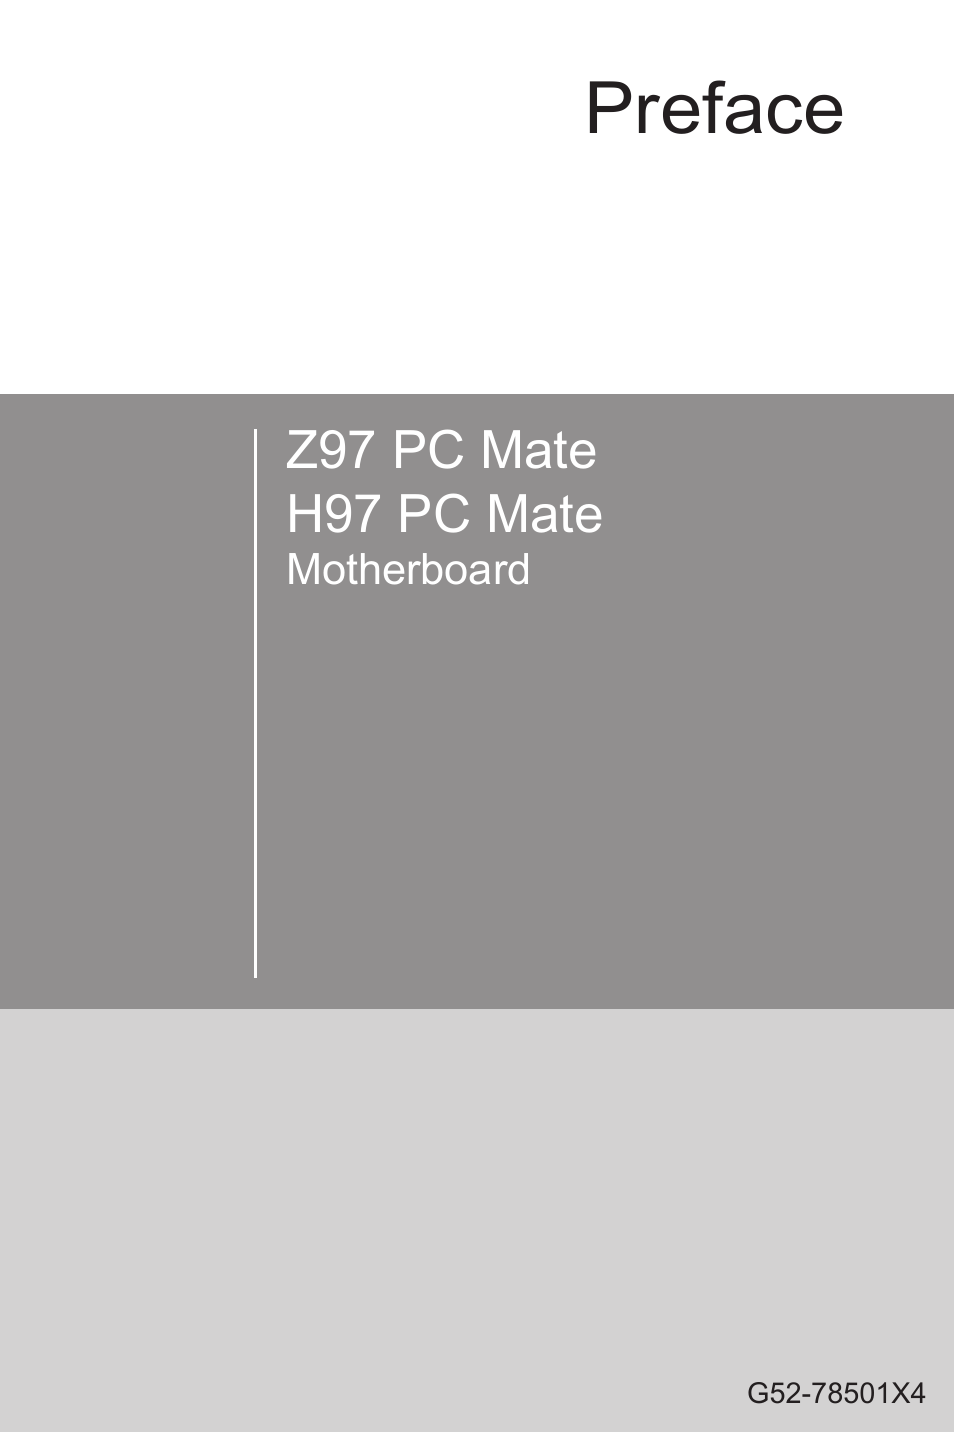 MSI Z97 PC MATE User Manual | 102 pages